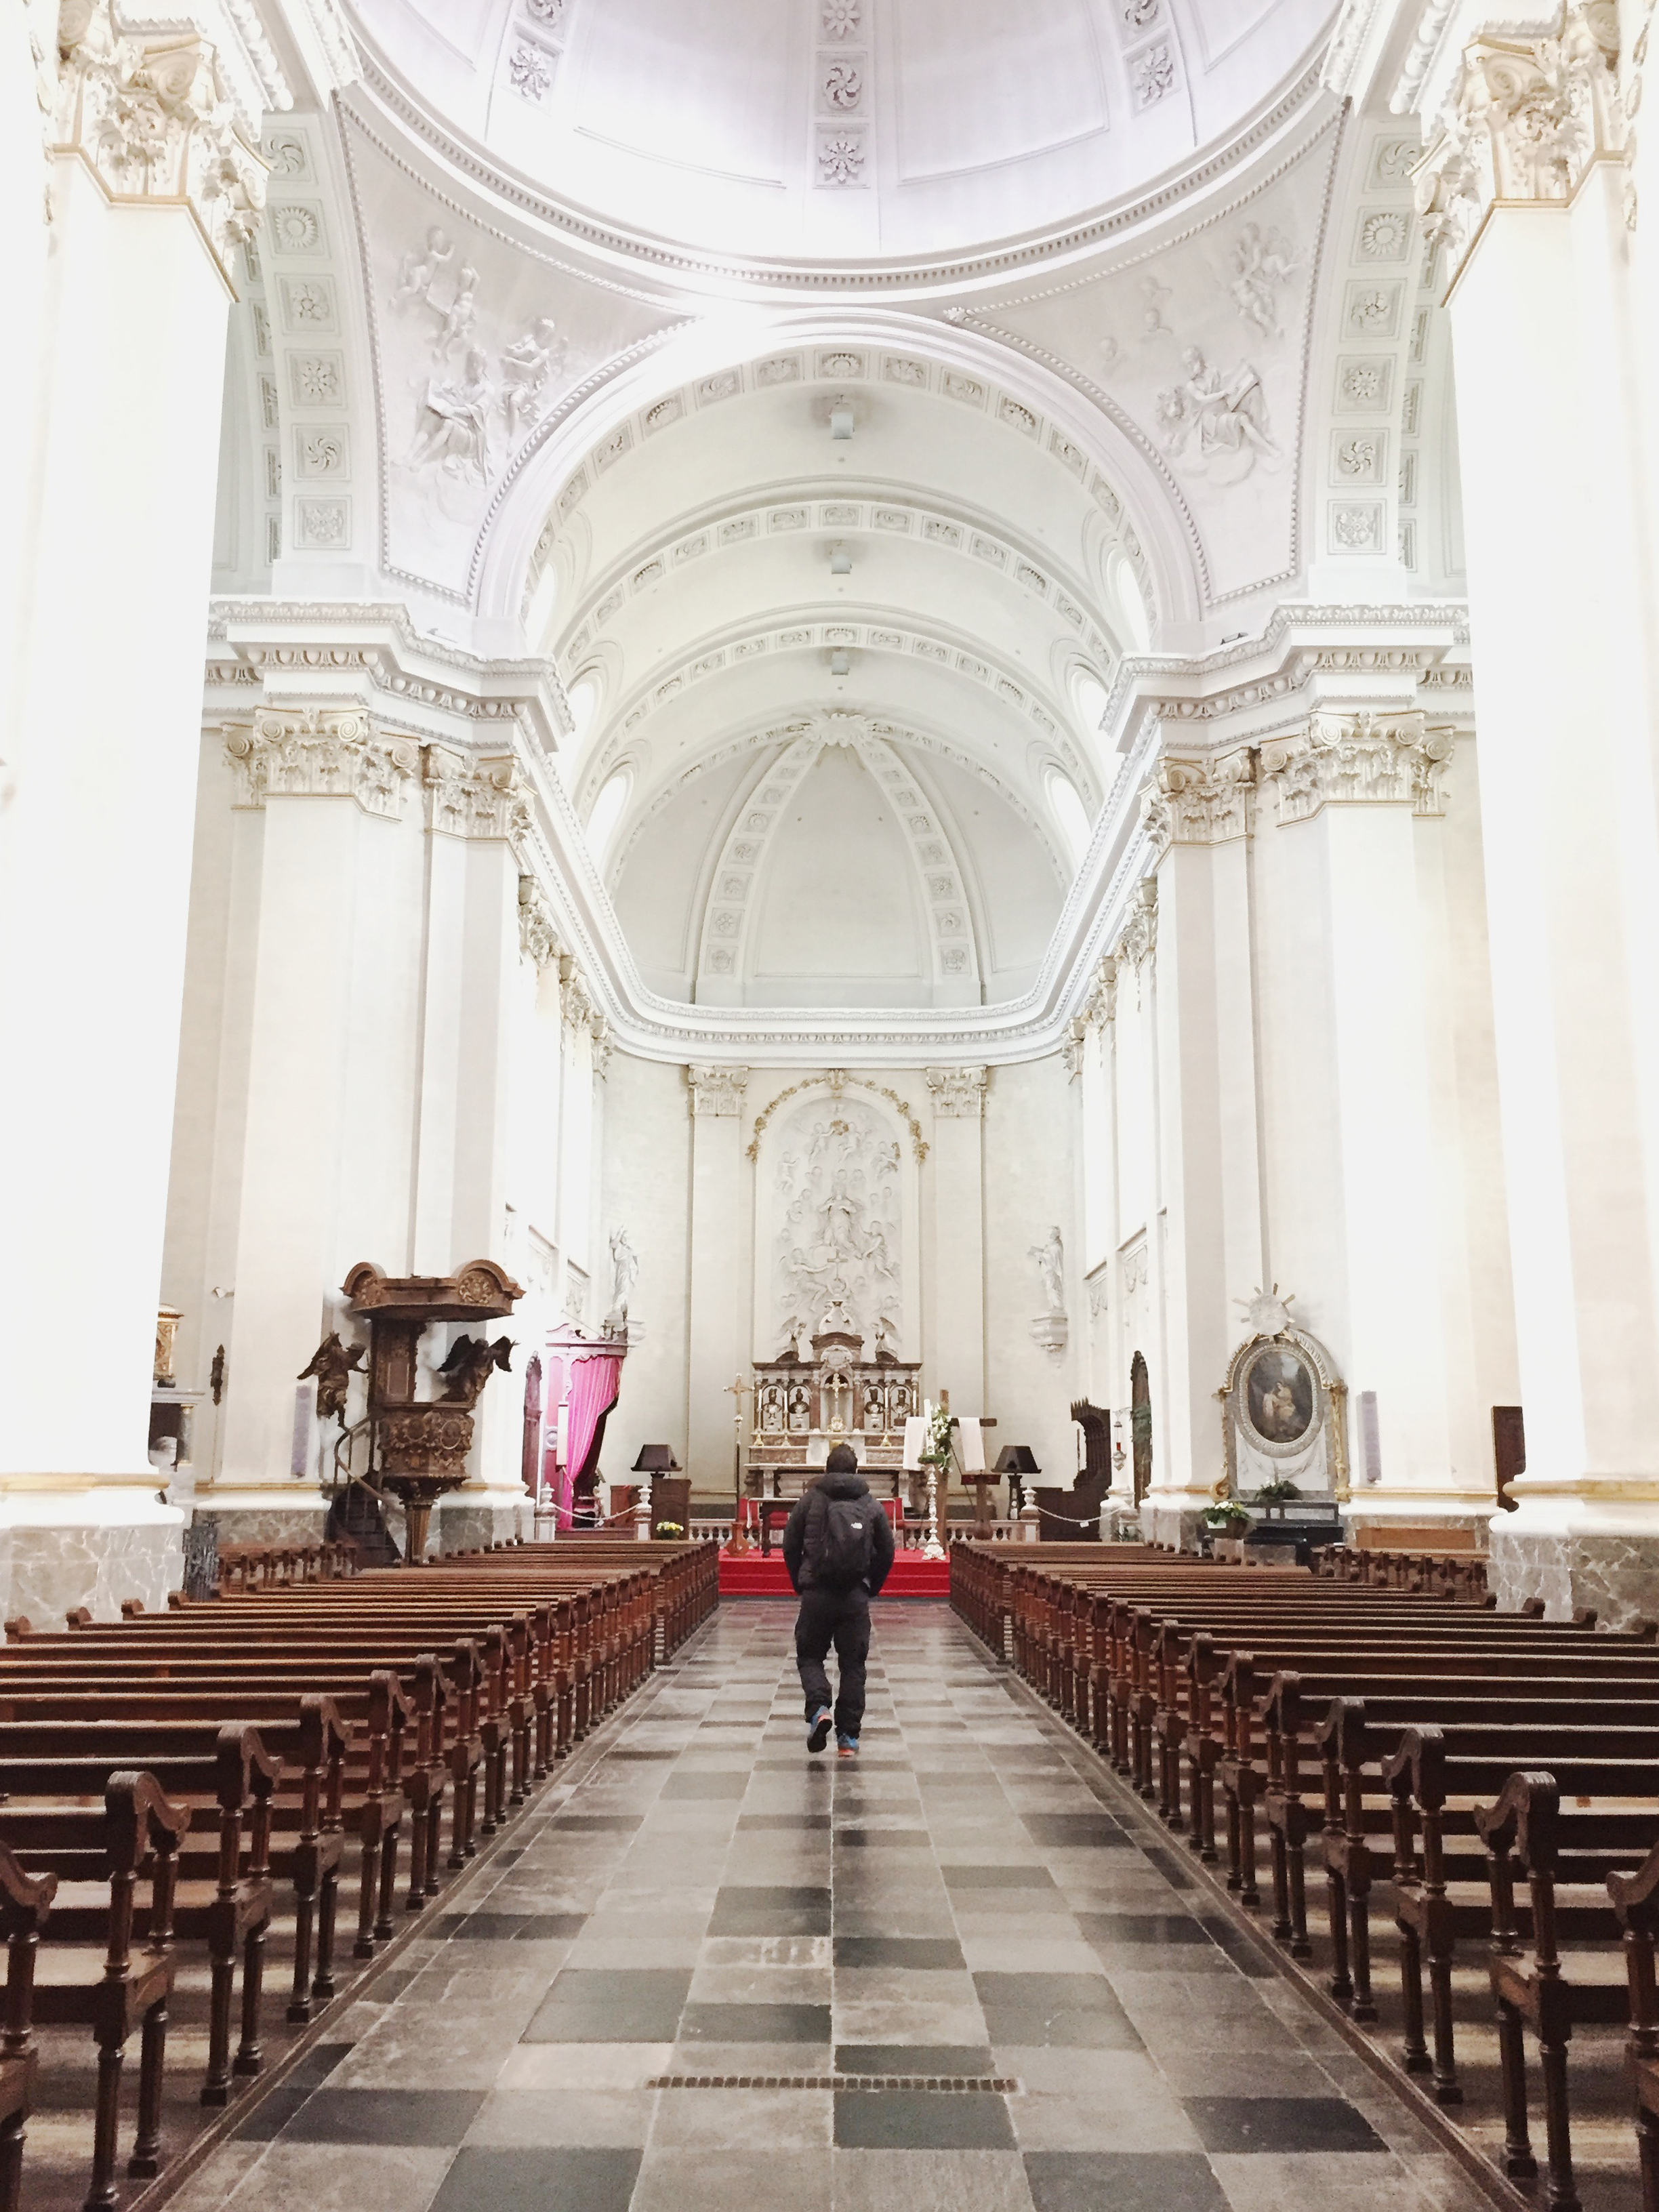 Inside the Malmedy cathedral. The high altar is made of marble and dates back to 1877.